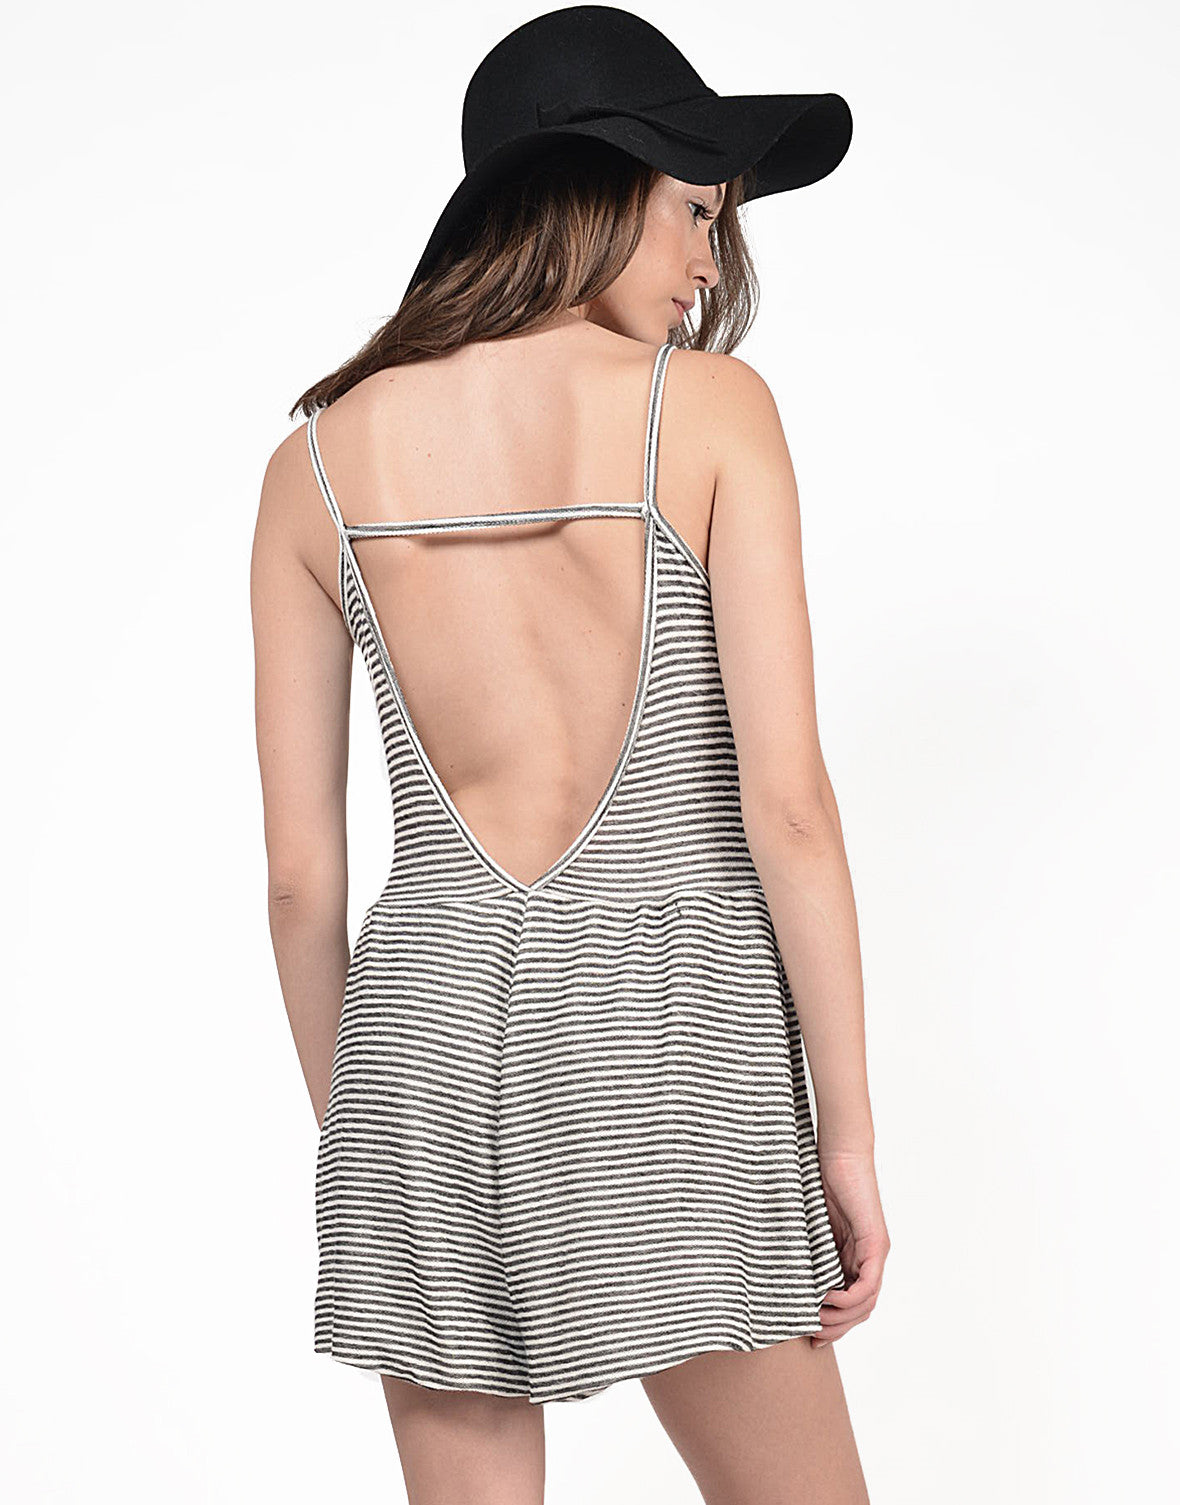 Back View of Low Back Striped Romper